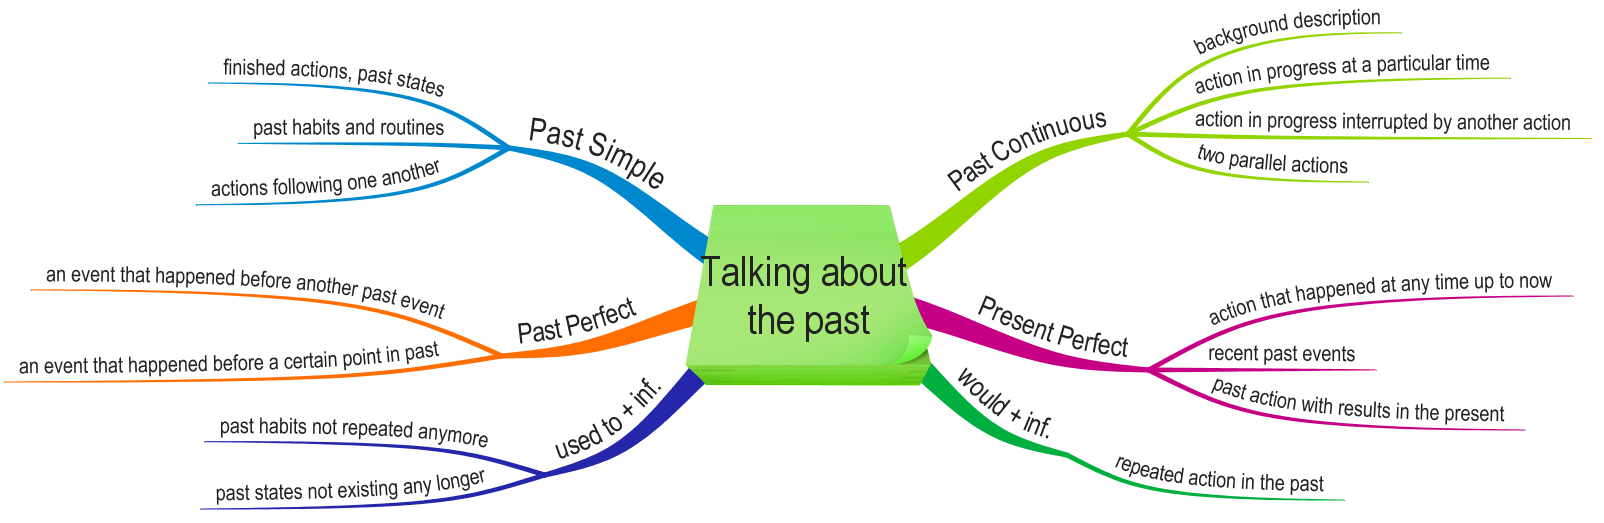 Mind Map by Gordana Popovic: TALKING ABOUT THE PAST: Past ...